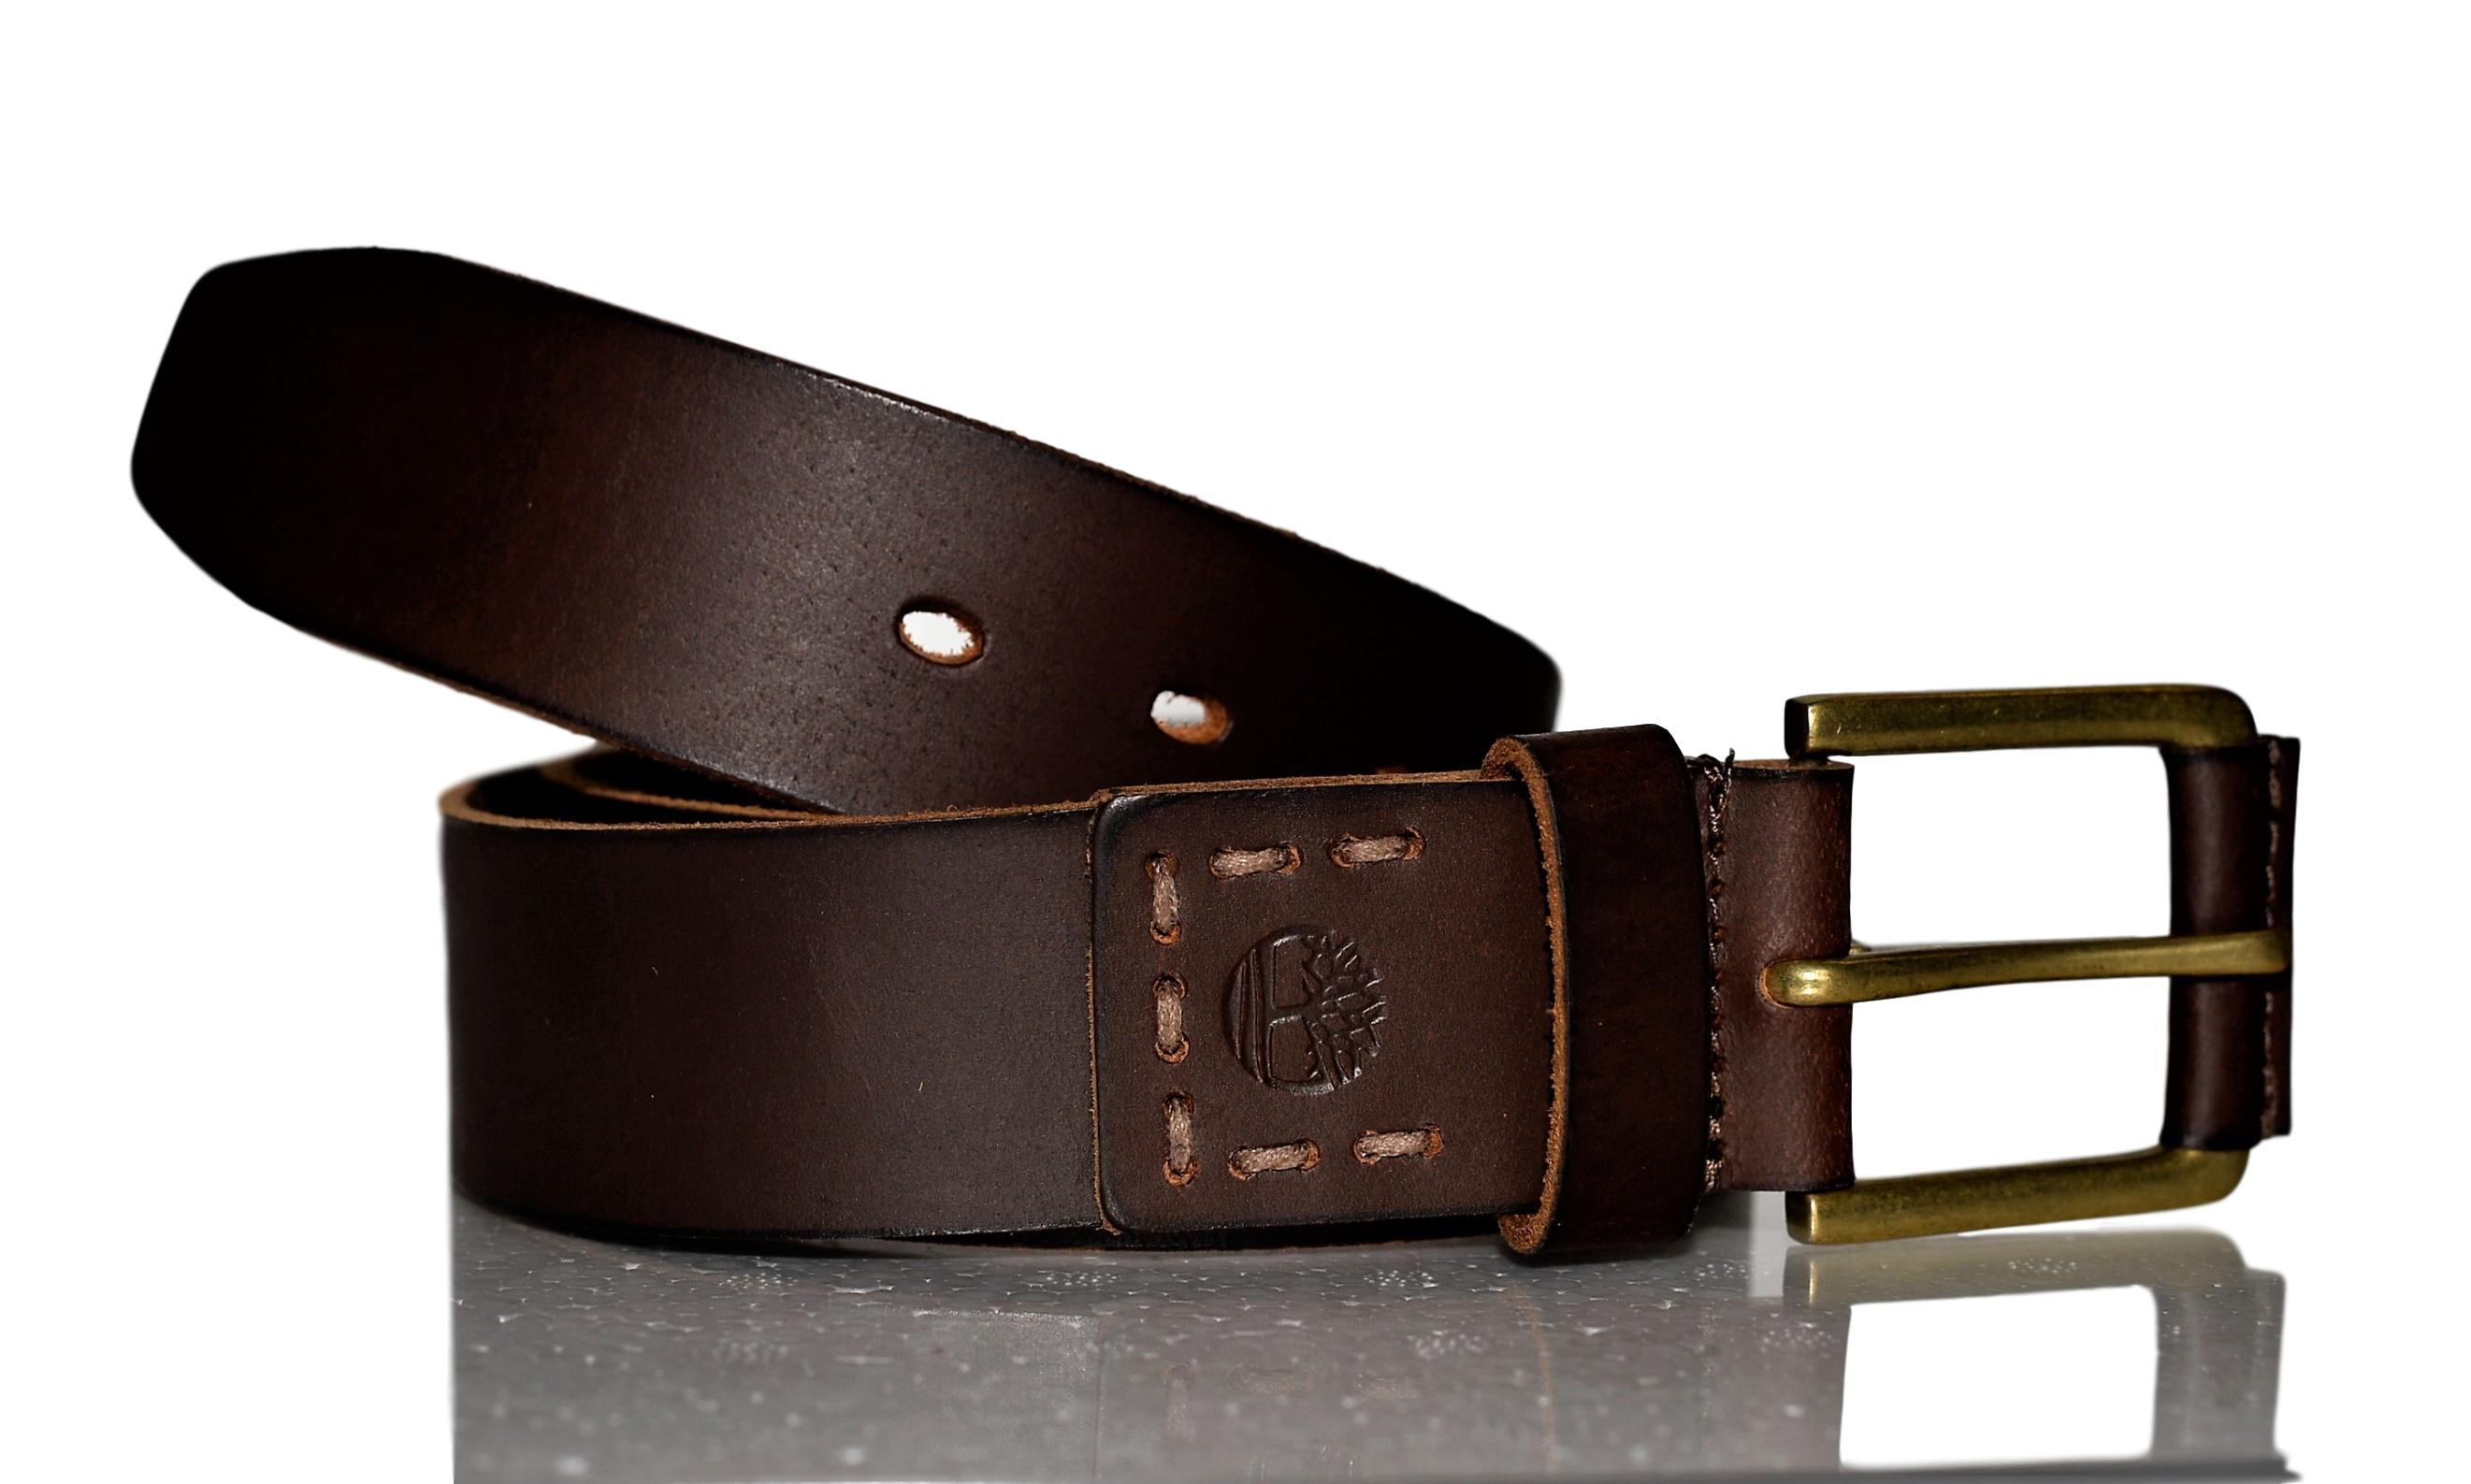 Timberland-Men-039-s-Casual-Distressed-Genuine-Leather-Belt thumbnail 14